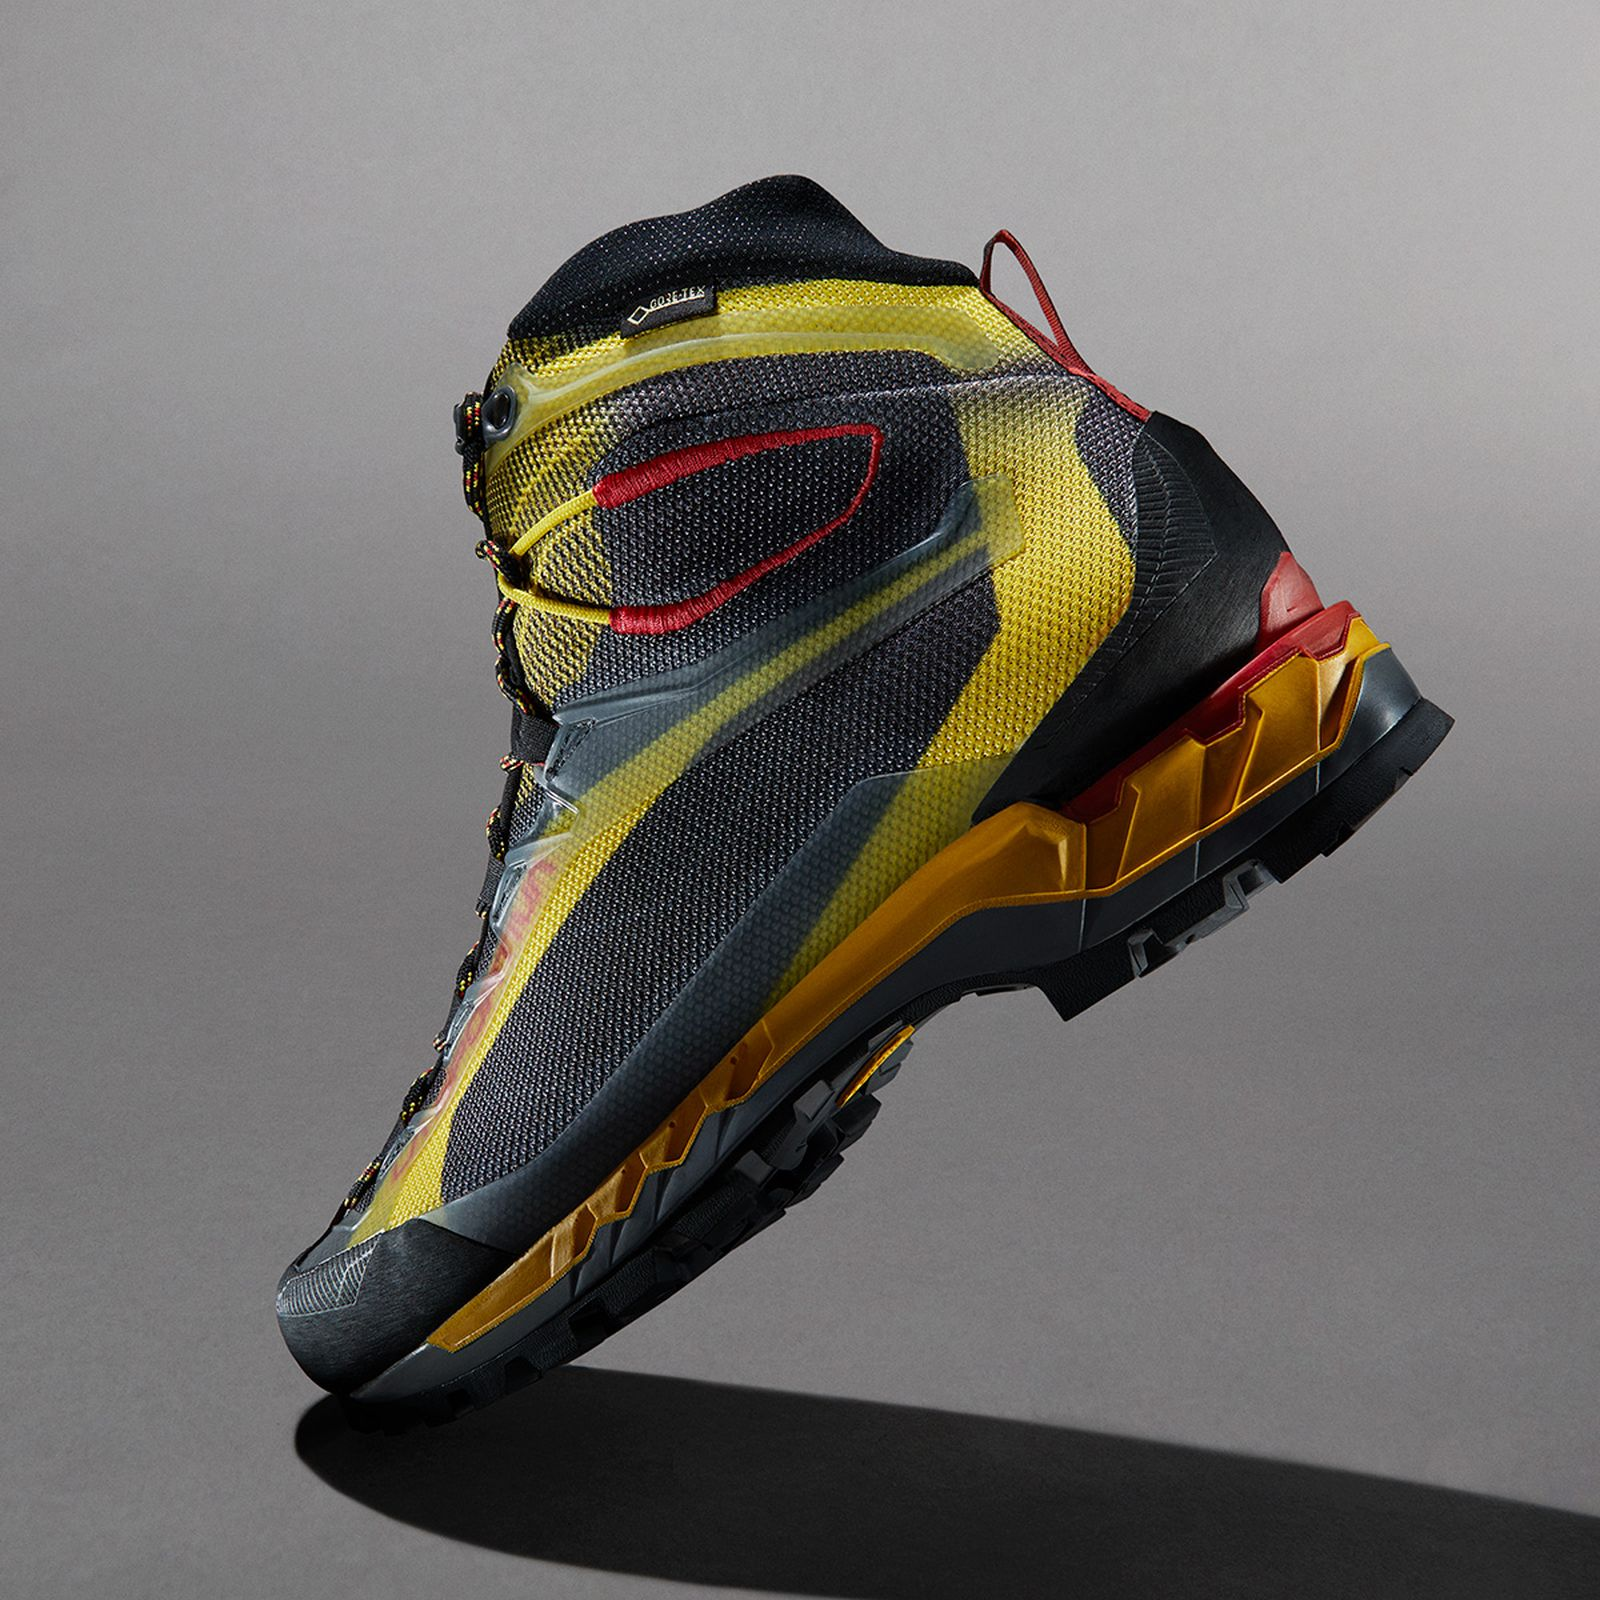 04tested-5-trekking-boots-find-best-outdoors-style-